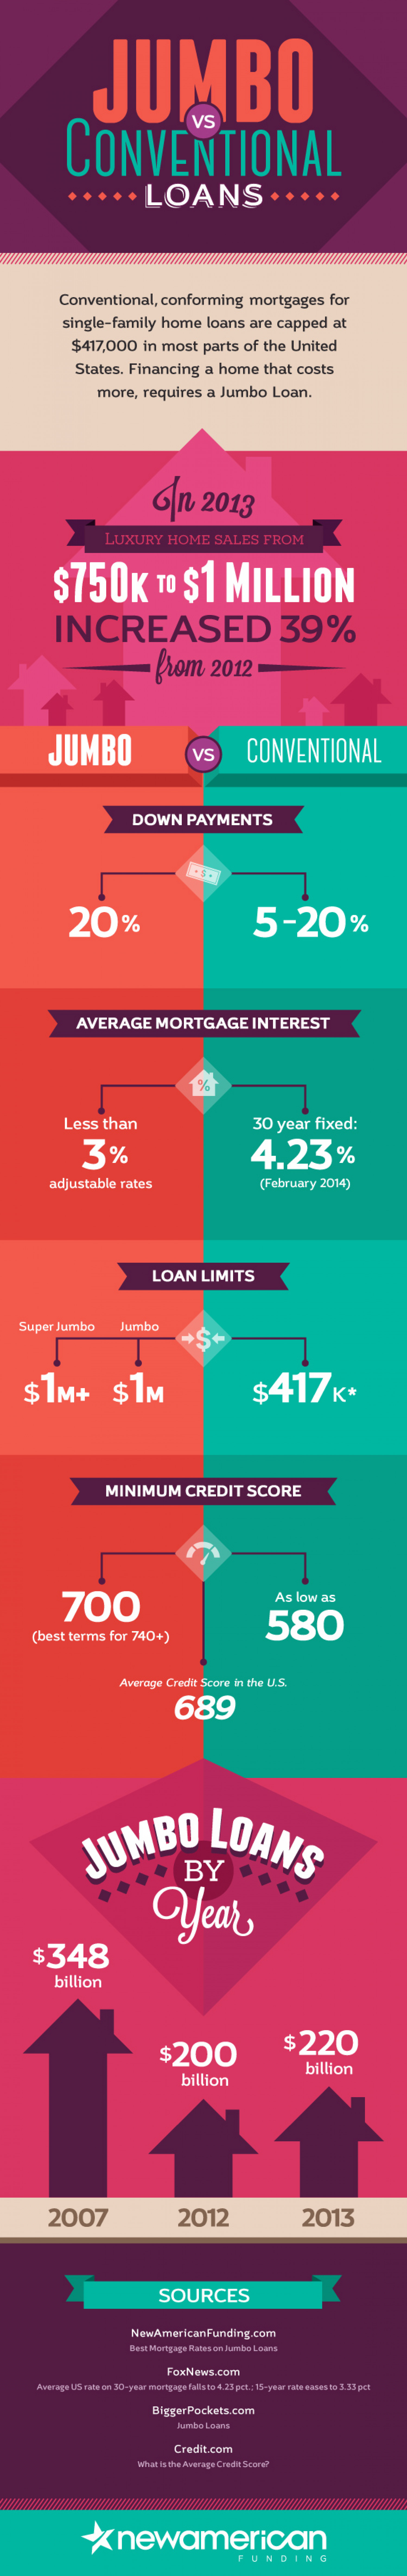 Jumbo vs Conventional Loans Infographic